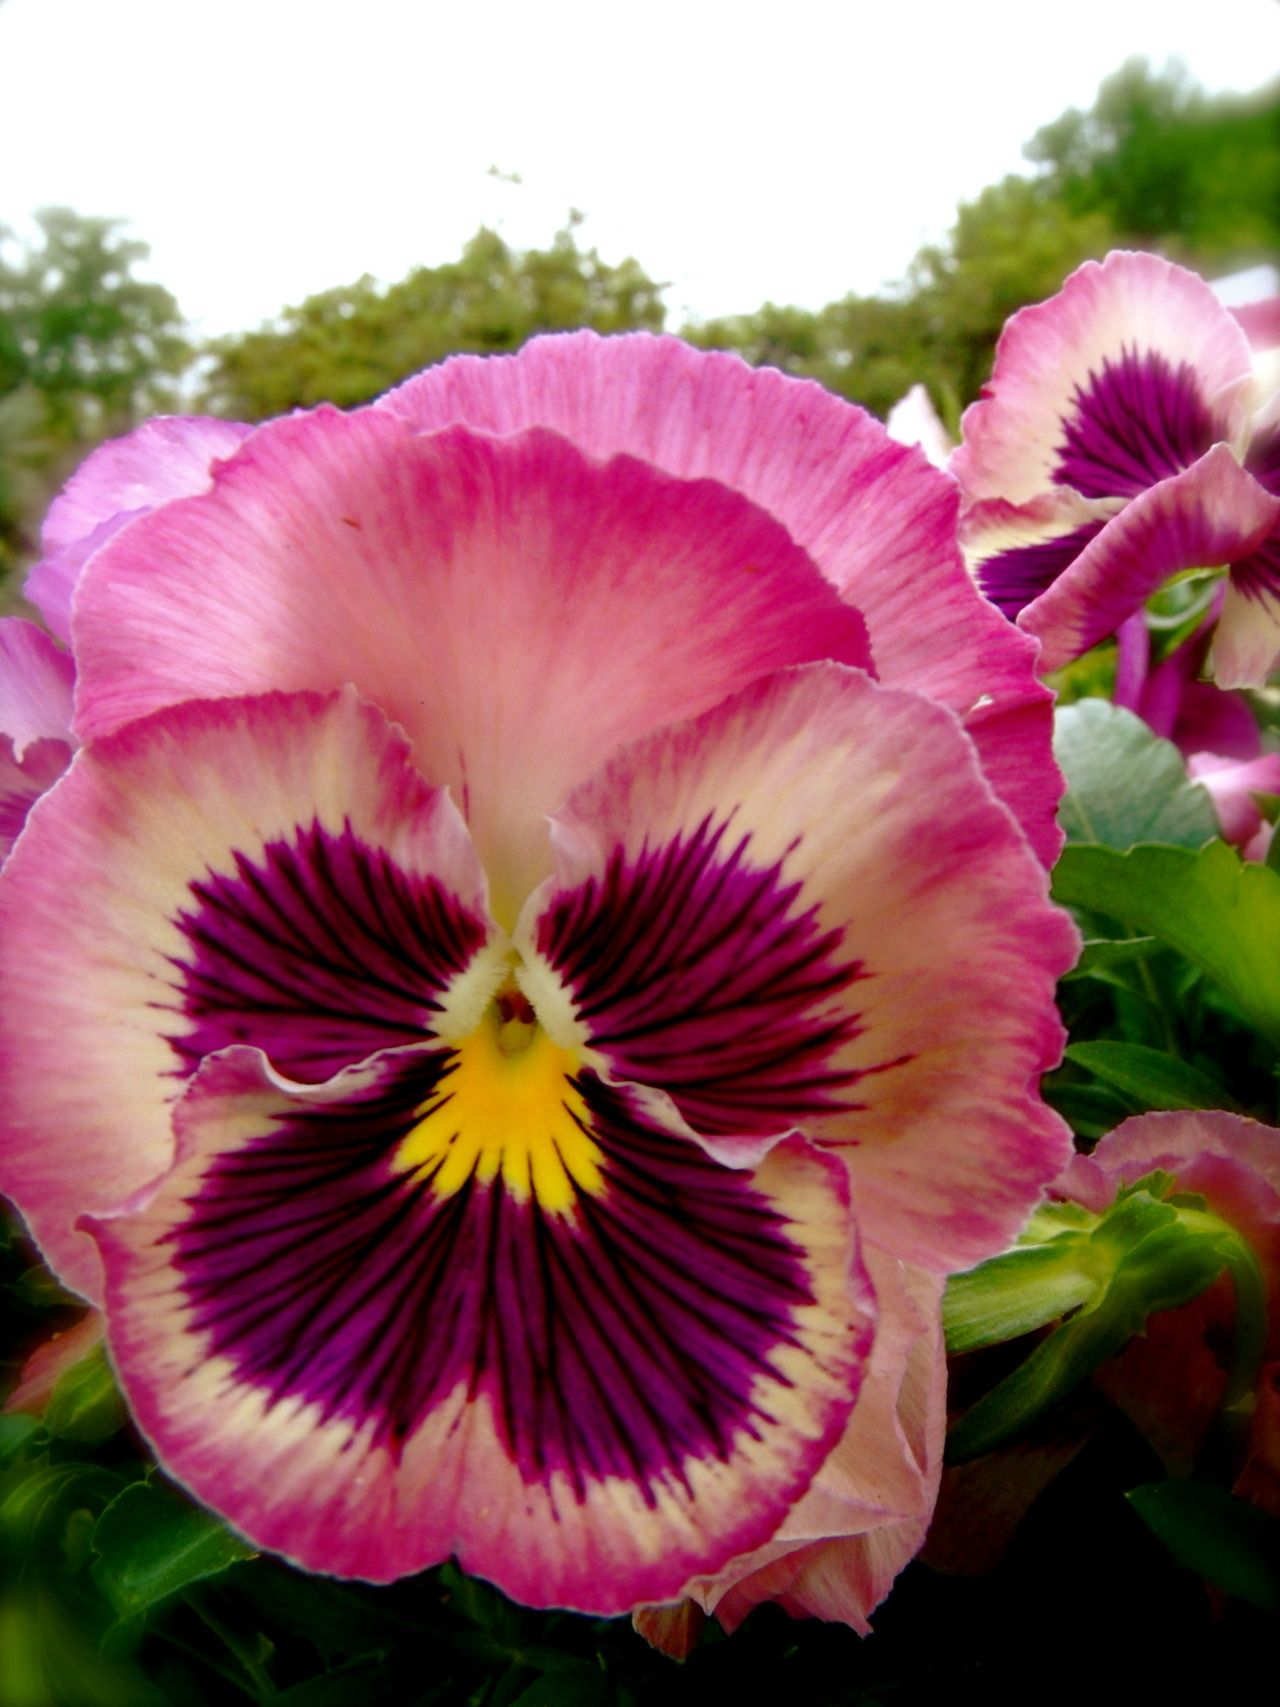 Pansy face flowers1 pinterest face pansies and one of the prettiest pink pansies ive seen mightylinksfo